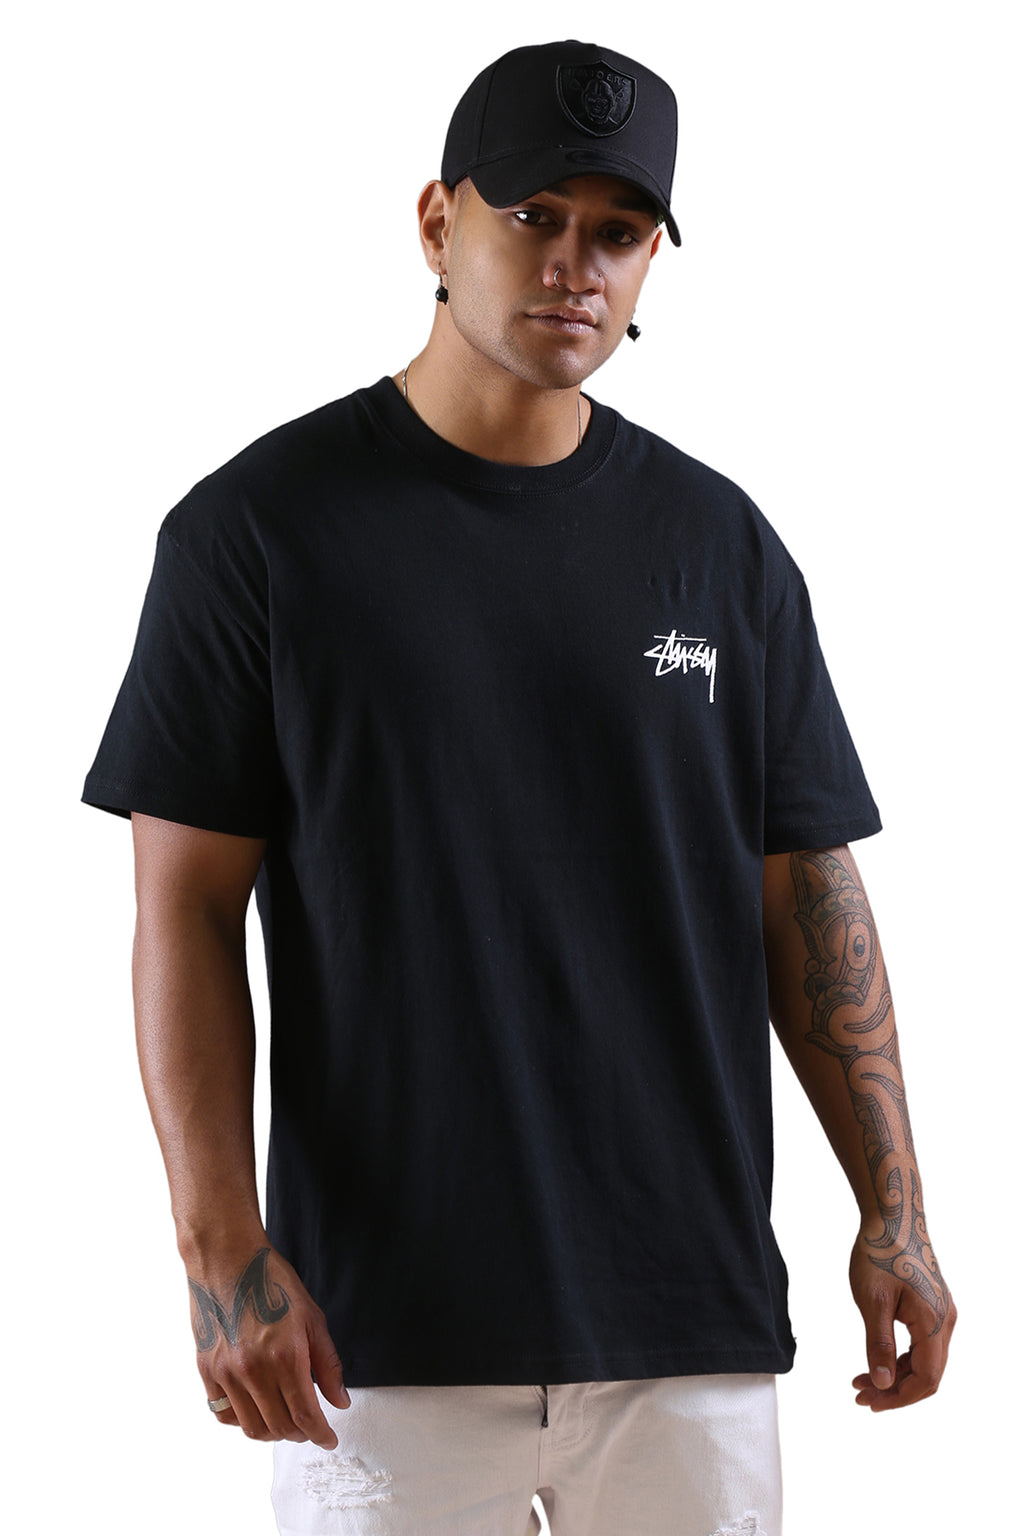 Stussy Say It Loud S/S Tee Black Front